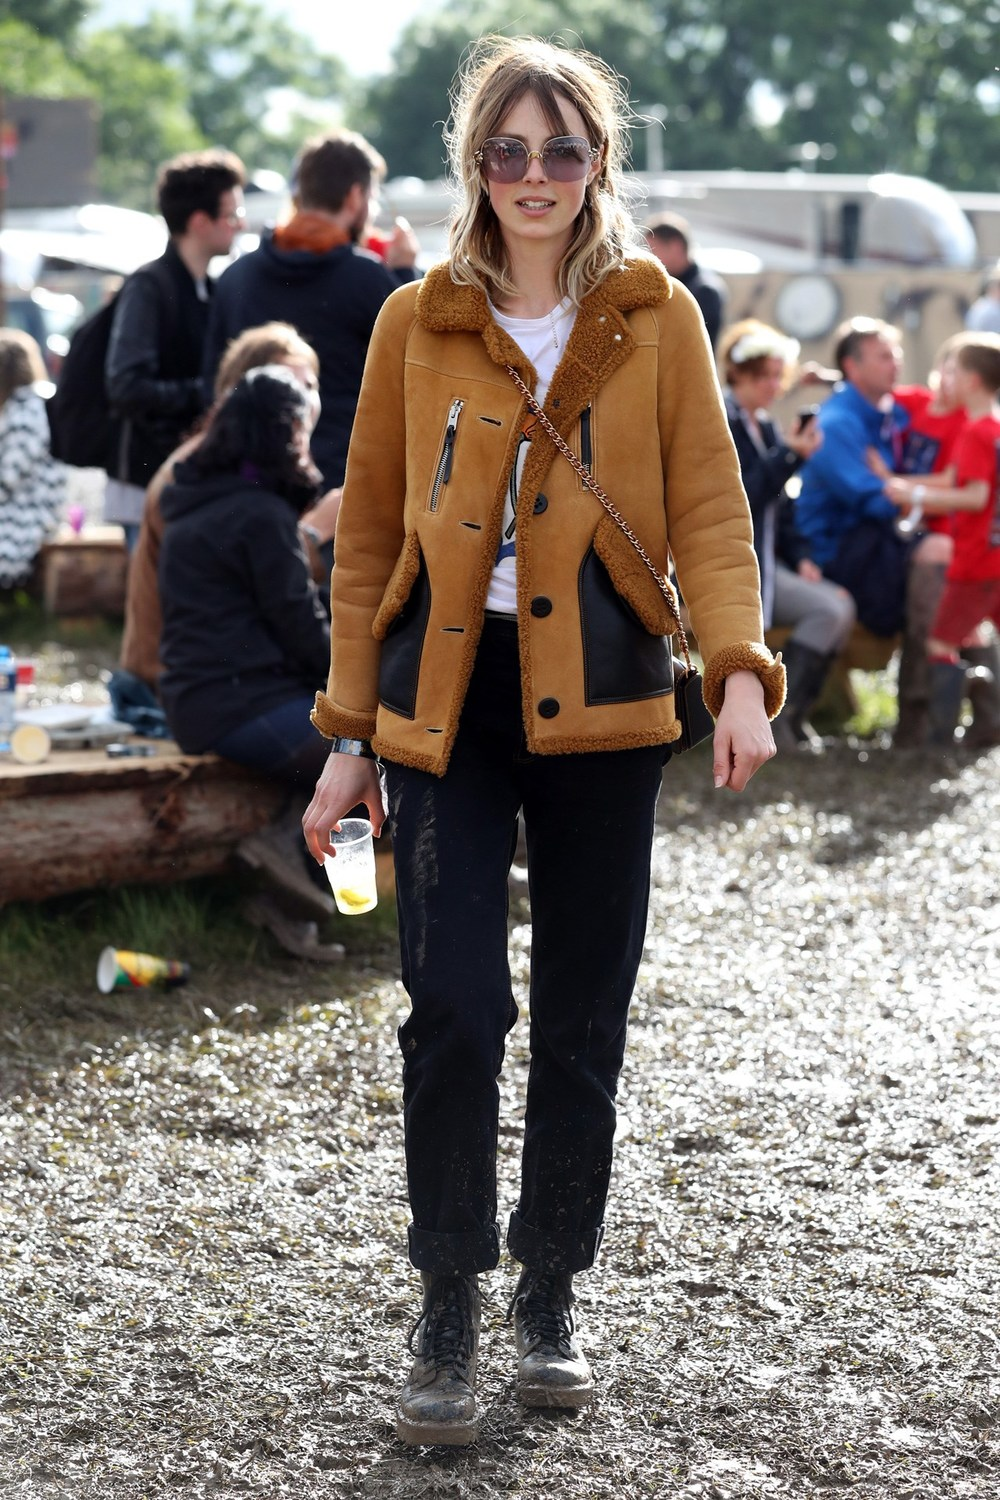 Edie Campbell wearing a SICK Coach coat, a dreamy pair of sunnies, and those black trousers? I'm dead